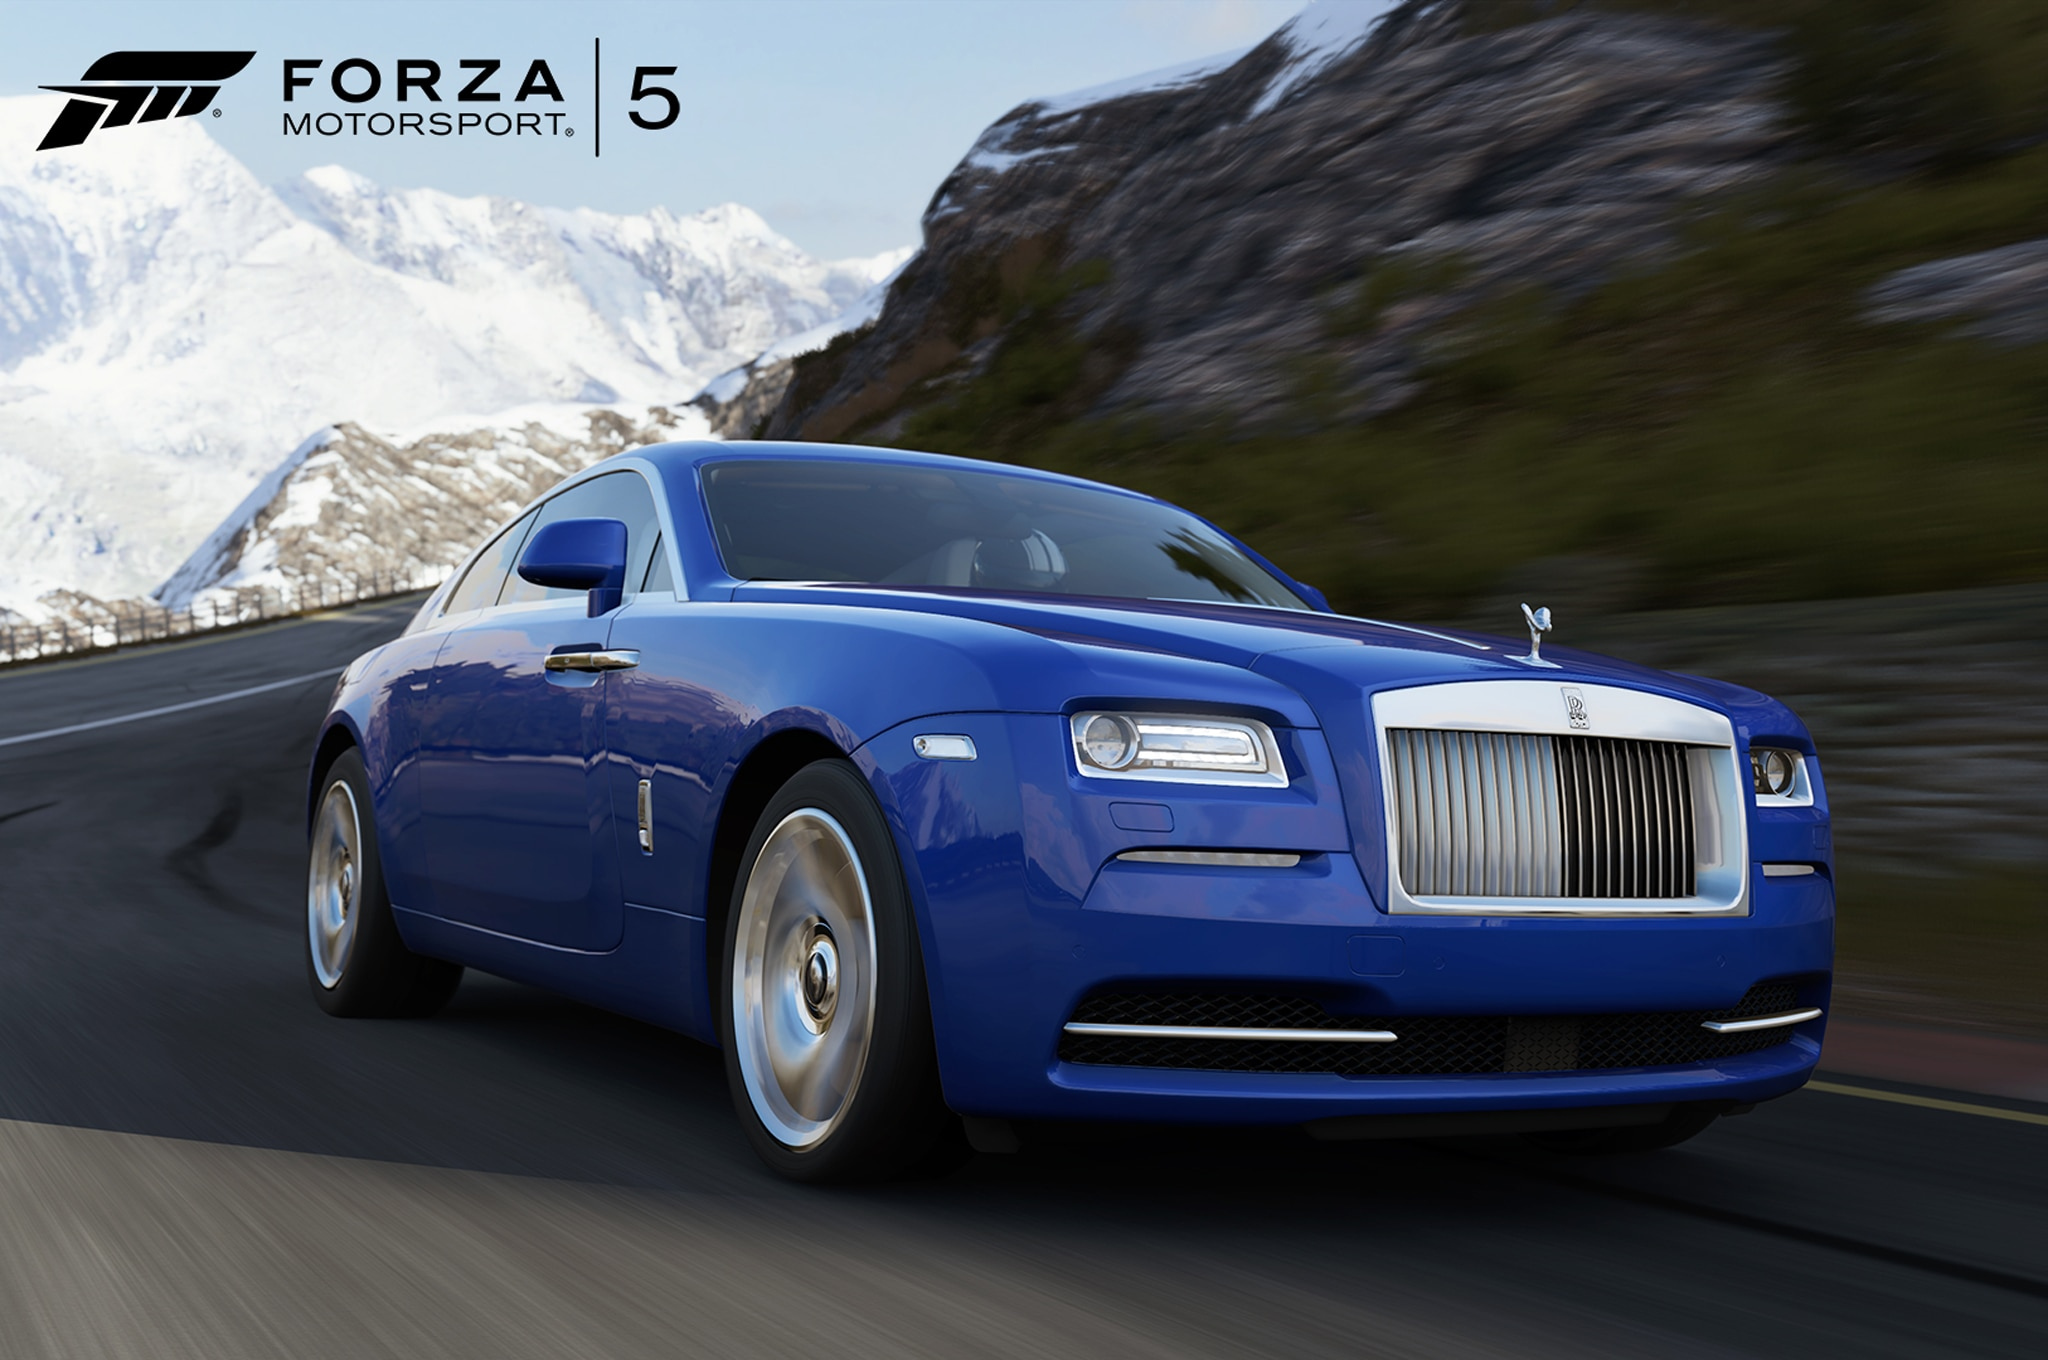 Rolls Royce Wraith In Forza Motorsports 5 Front Three Quarter1